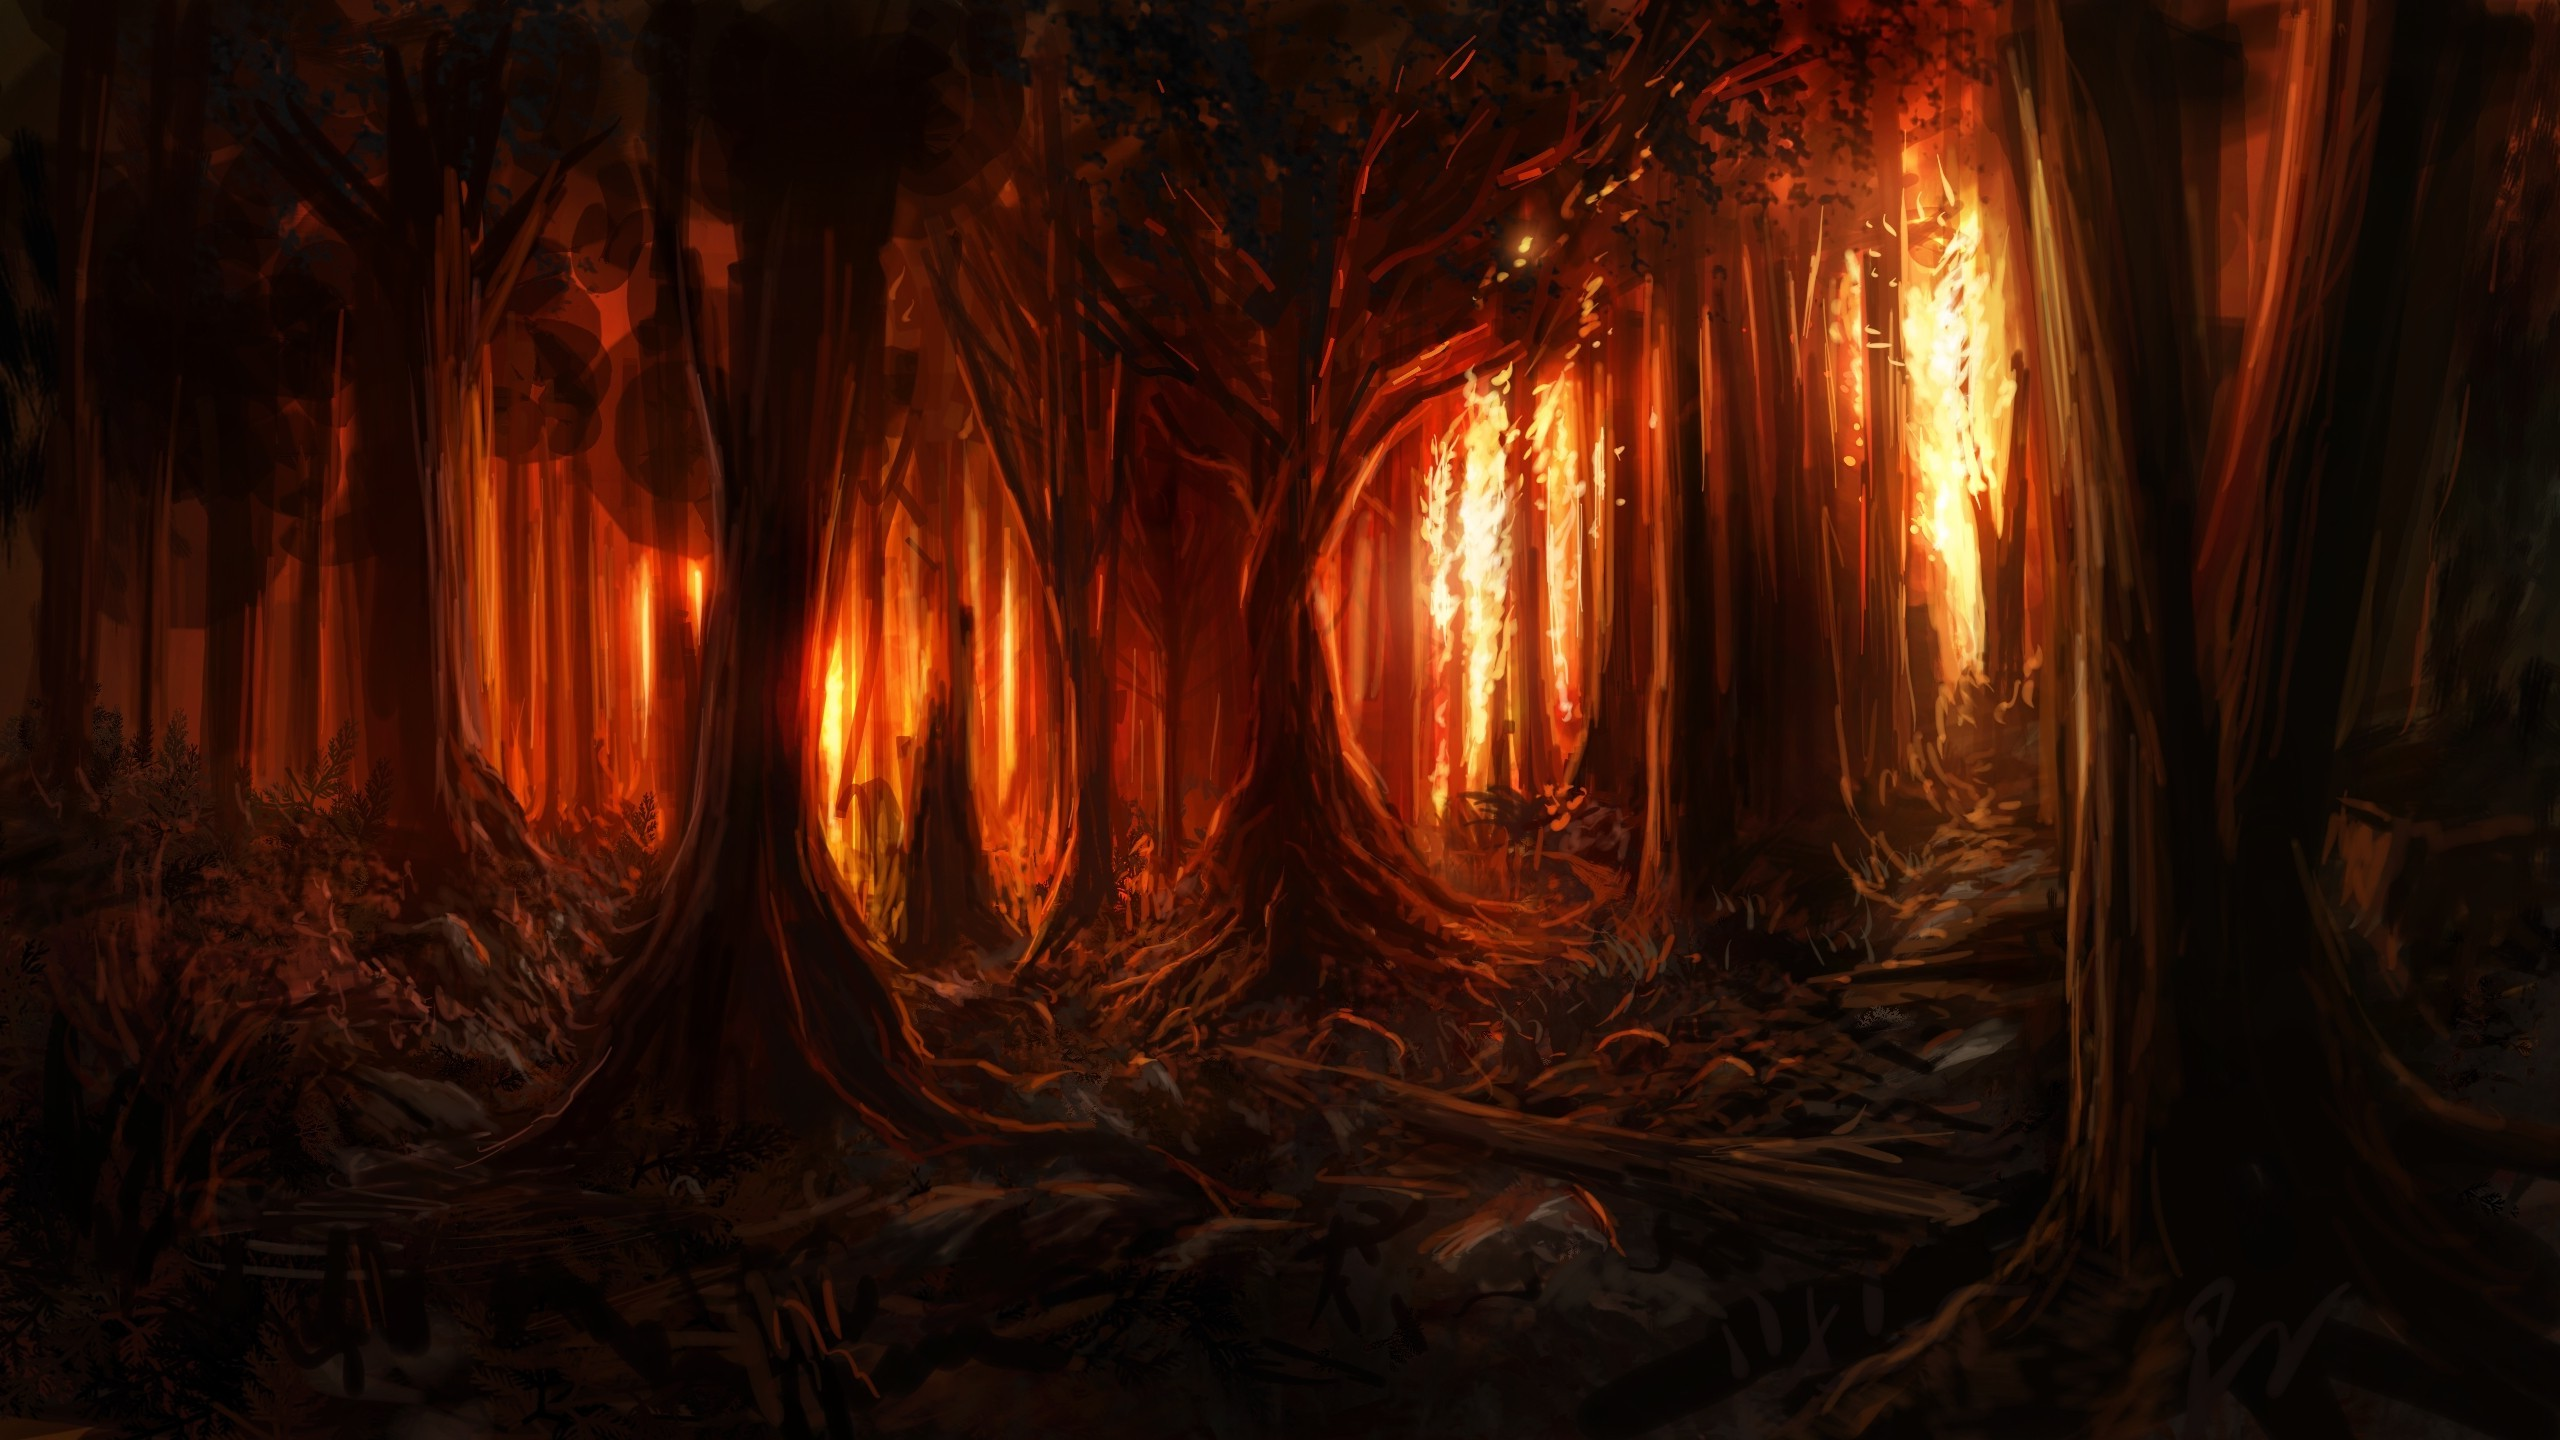 Fall Cabin Wallpaper Digital Art Nature Trees Forest Painting Burning